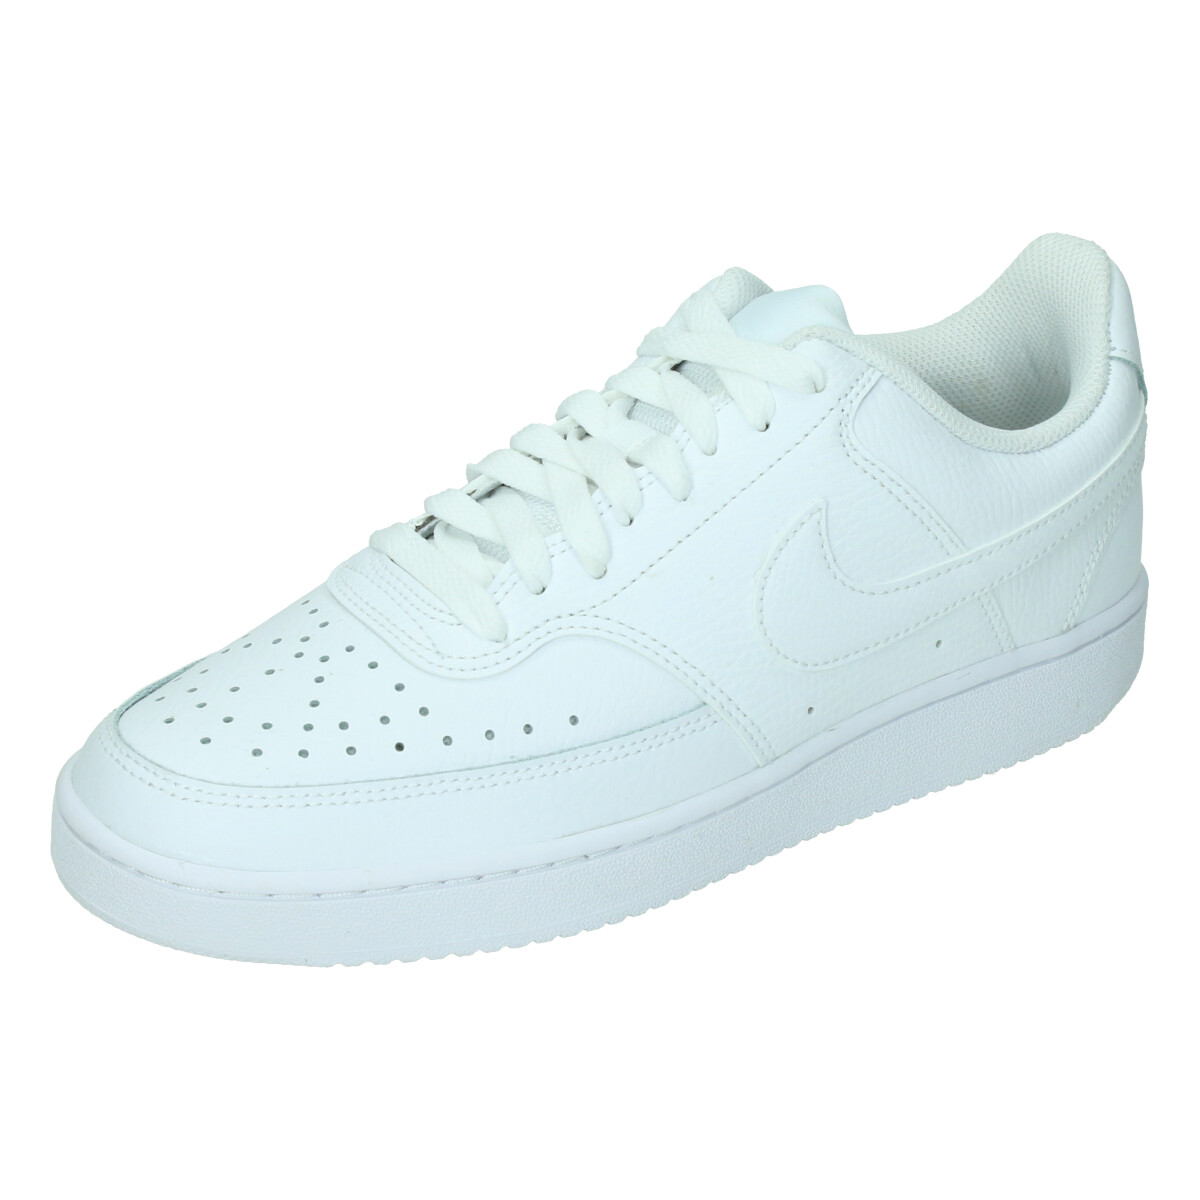 Nike NIKECOURT VISION LOW WOMEN'S SHOE